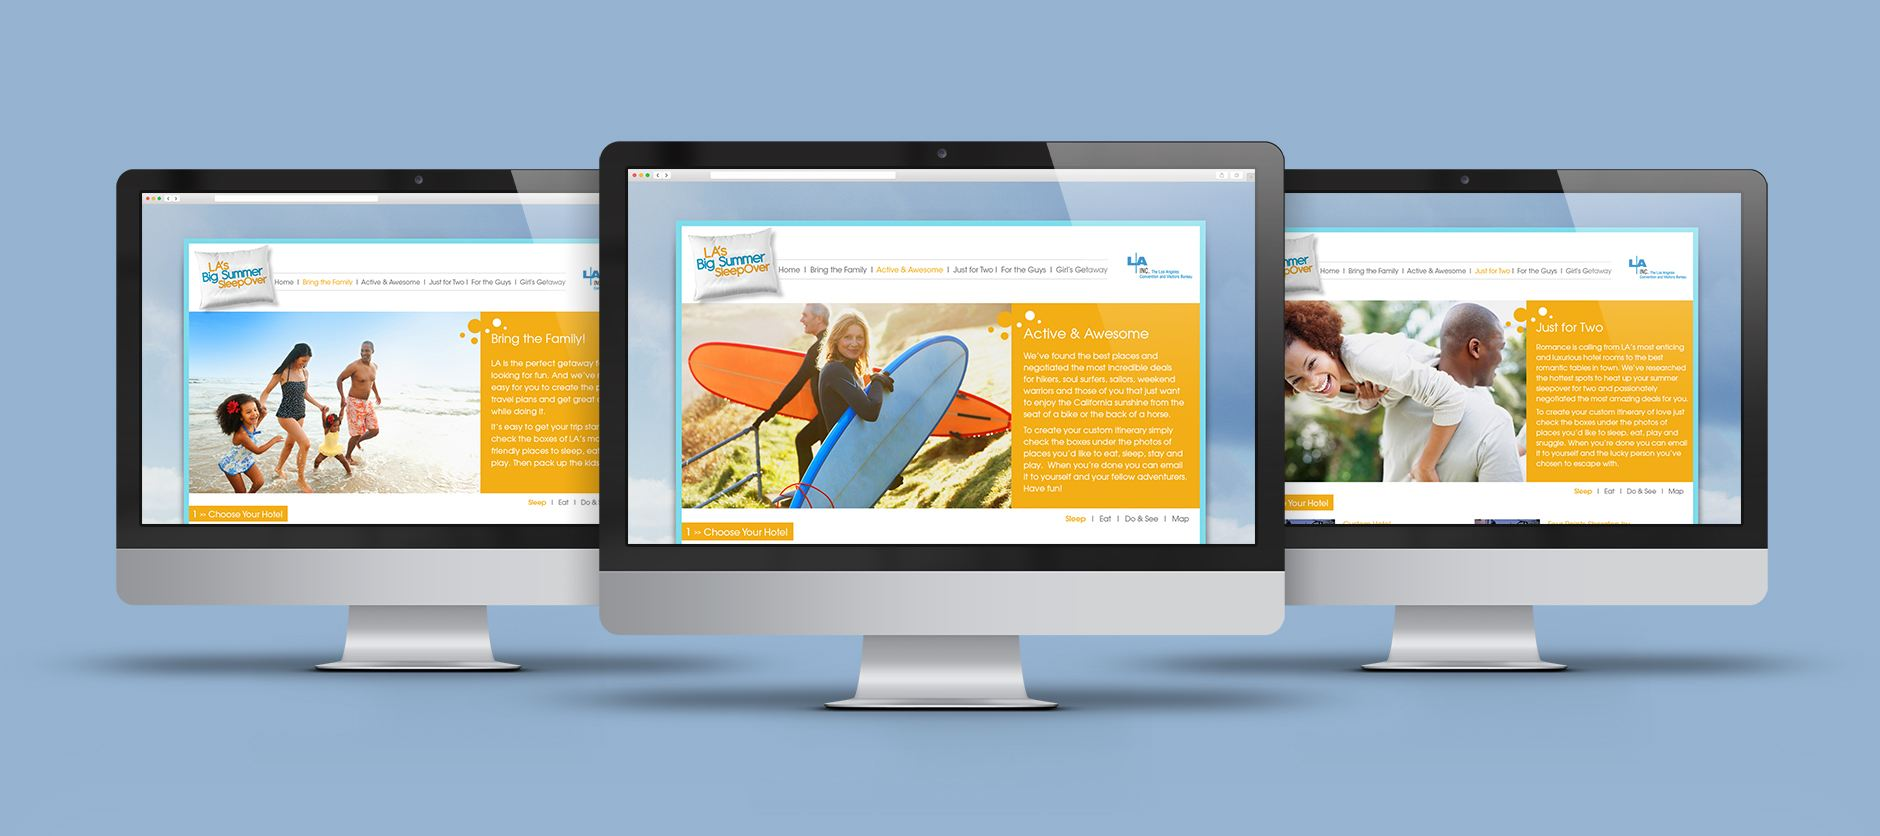 big summer sleepover itineraries landing pages los angeles